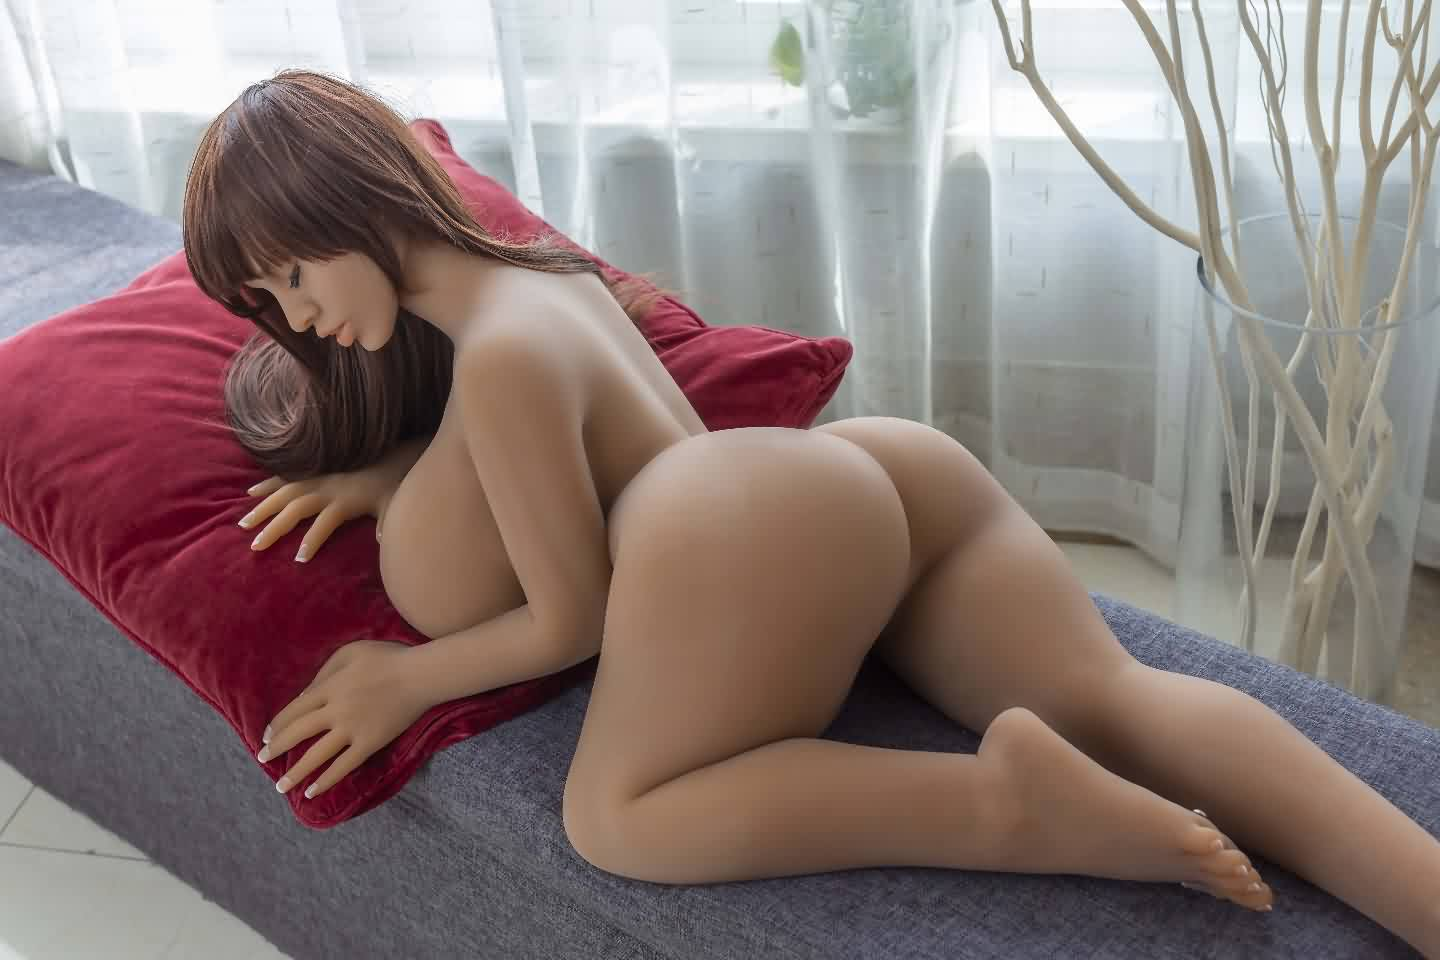 You And Your Sex Doll: What Are You Waiting For?-MiisooDoll